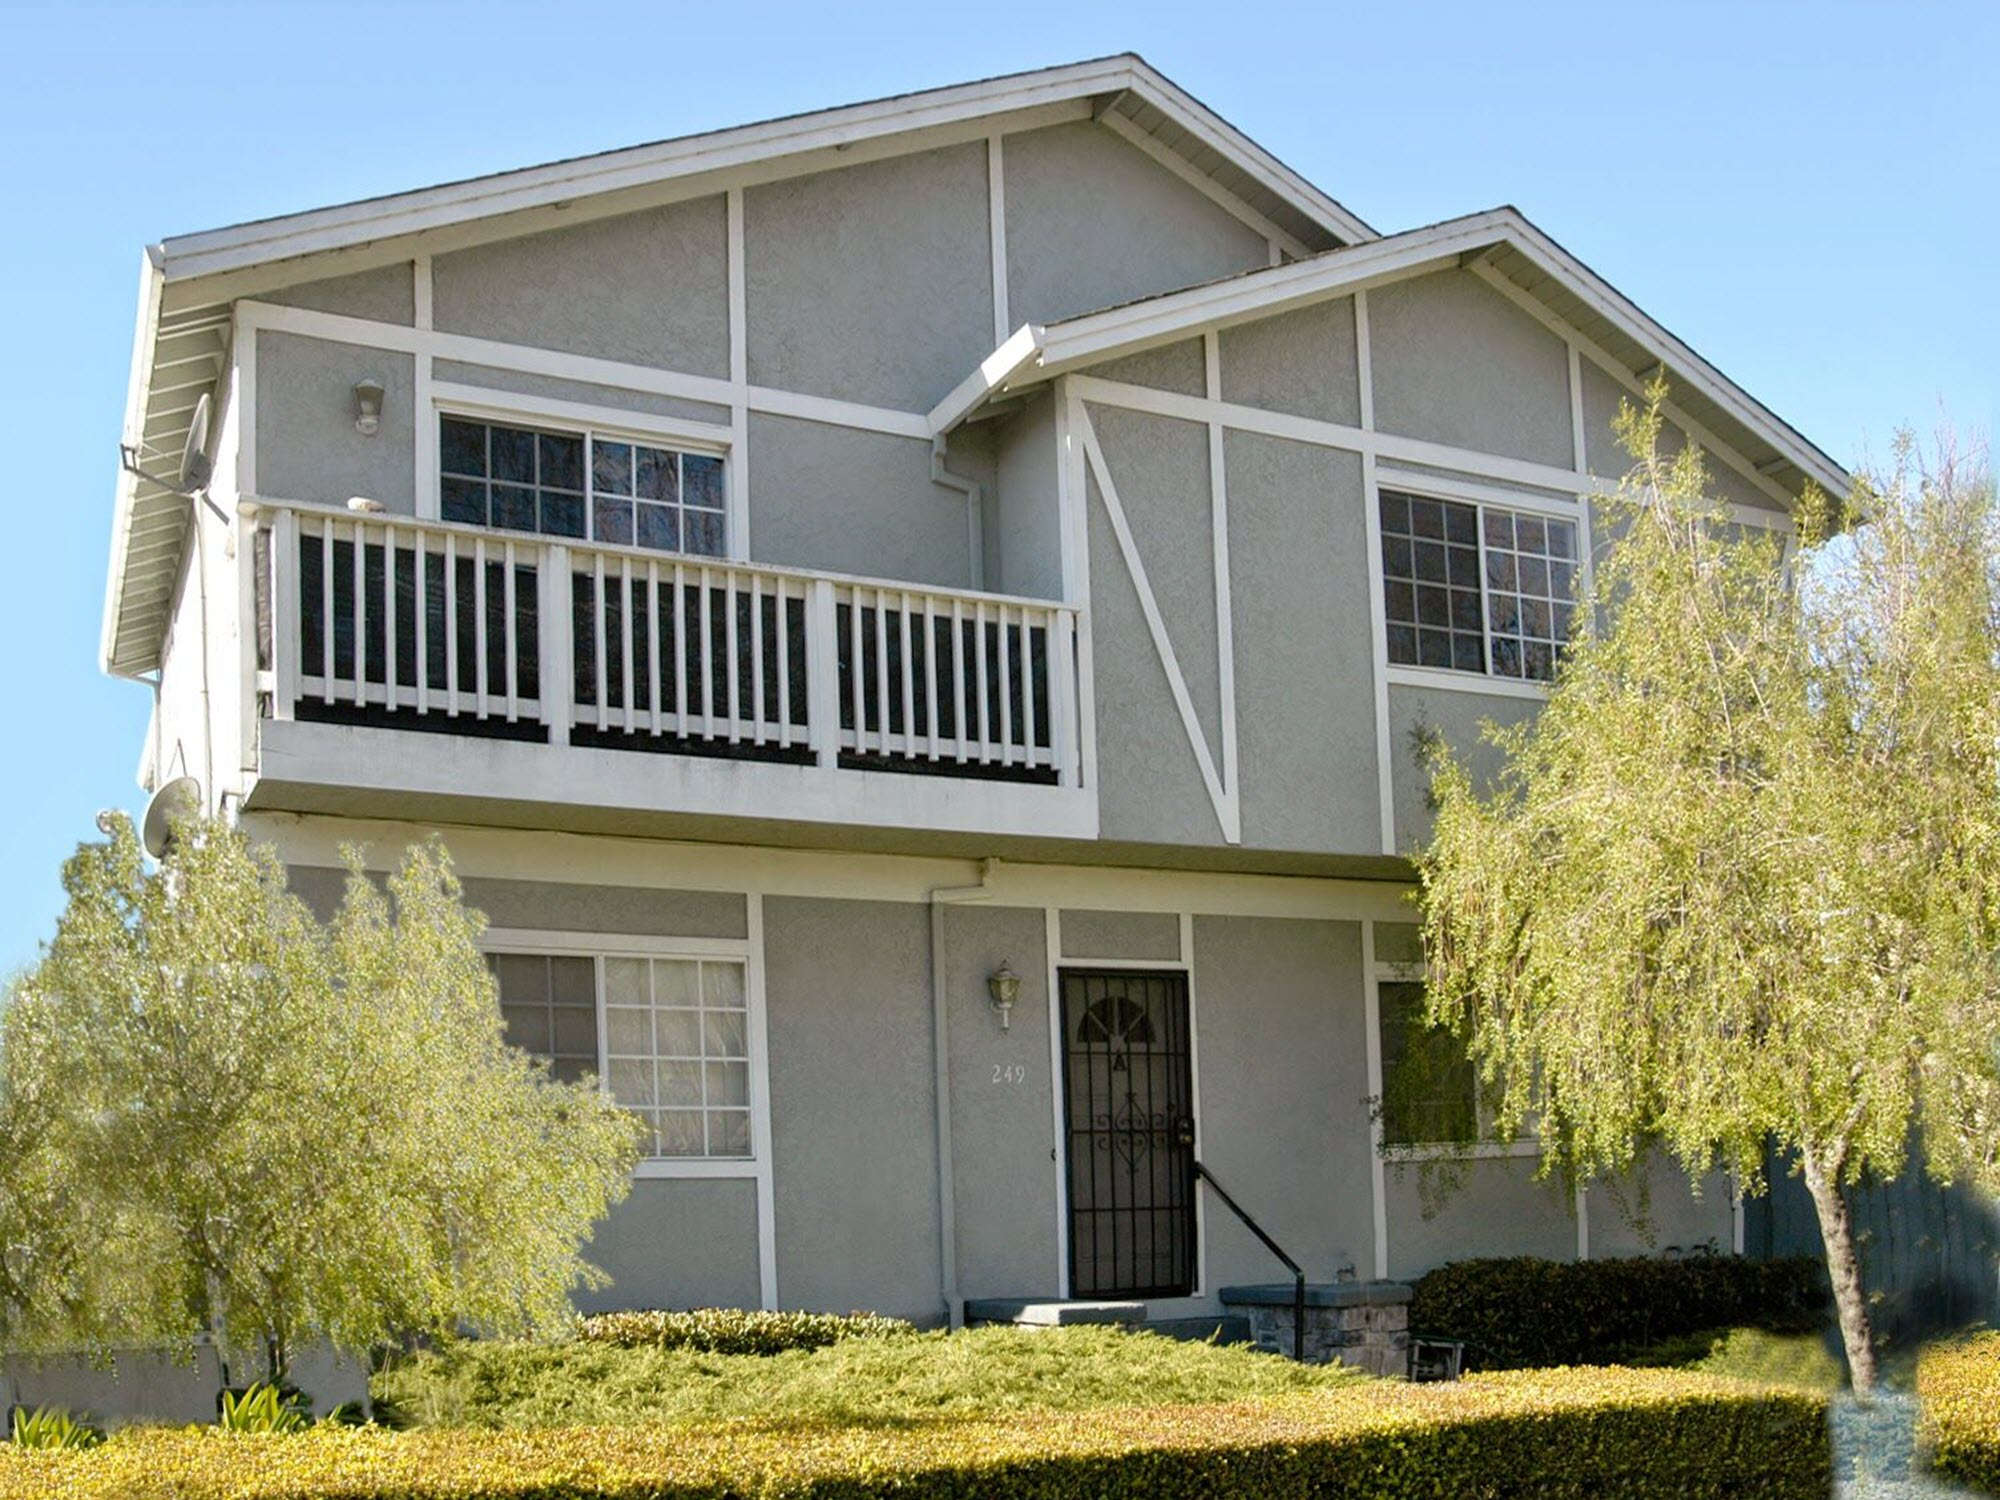 Best upscale sober living homes and addiction recovery residences in San Mateo | San Francisco, CA